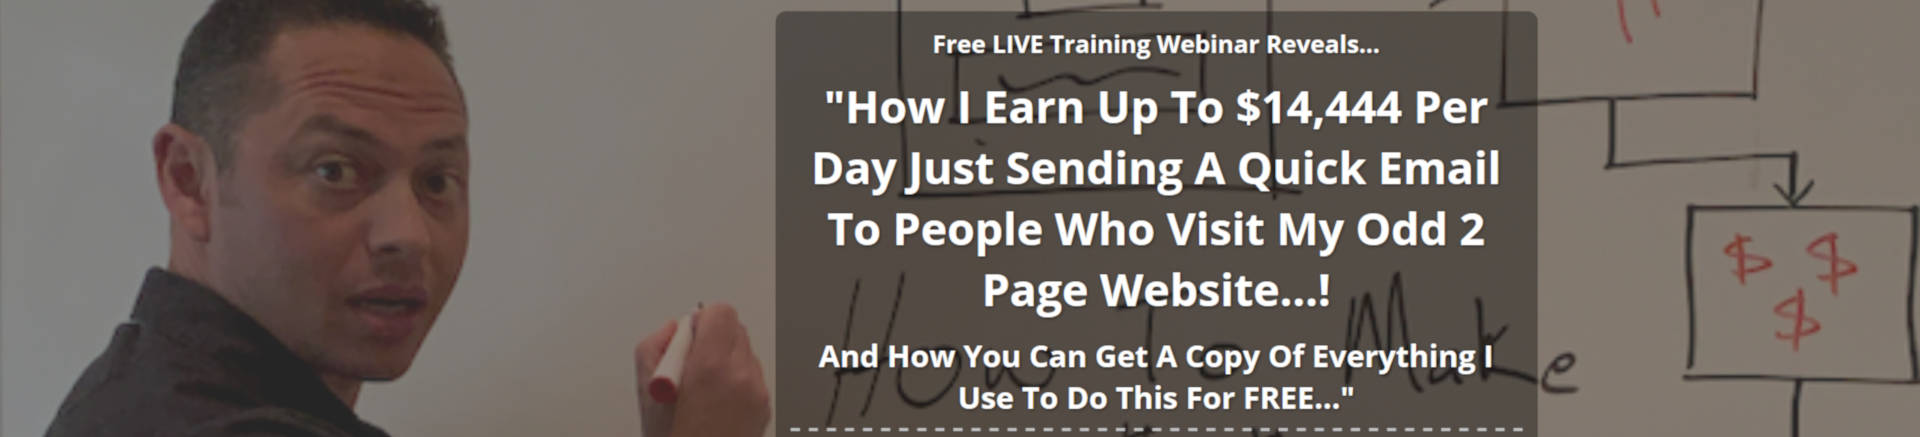 Under 500 1k A Day Fast Track Training Program